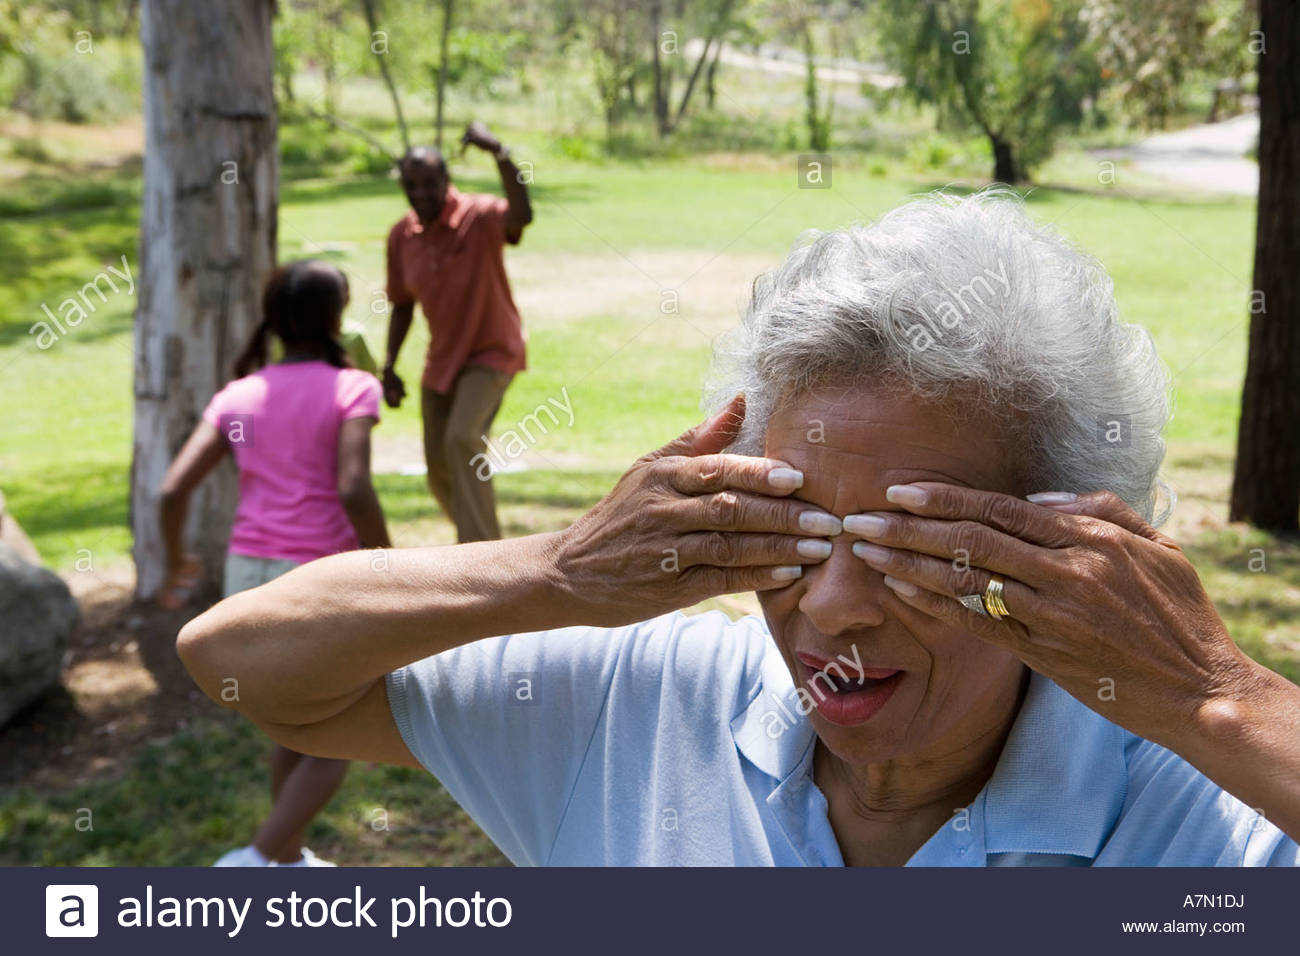 Children 6 10 playing hide and seek with grandparents in park senior woman covering eyes - Stock Image